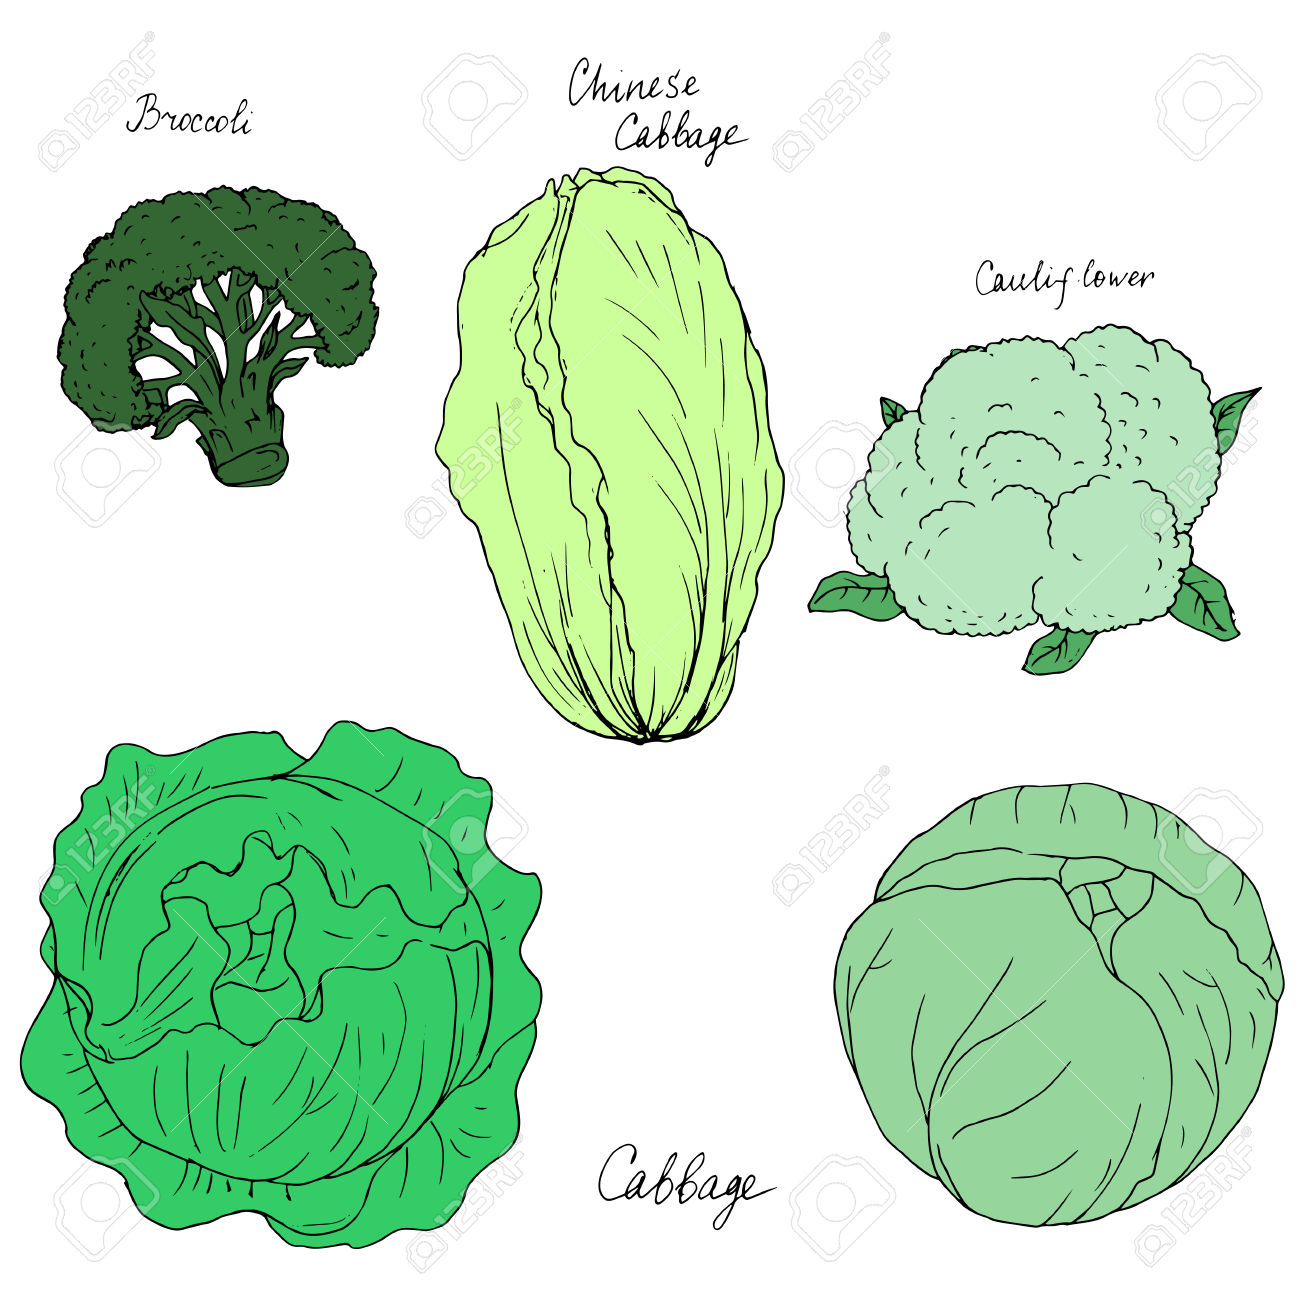 Cabbage clipart vector. Cauliflower pencil and in